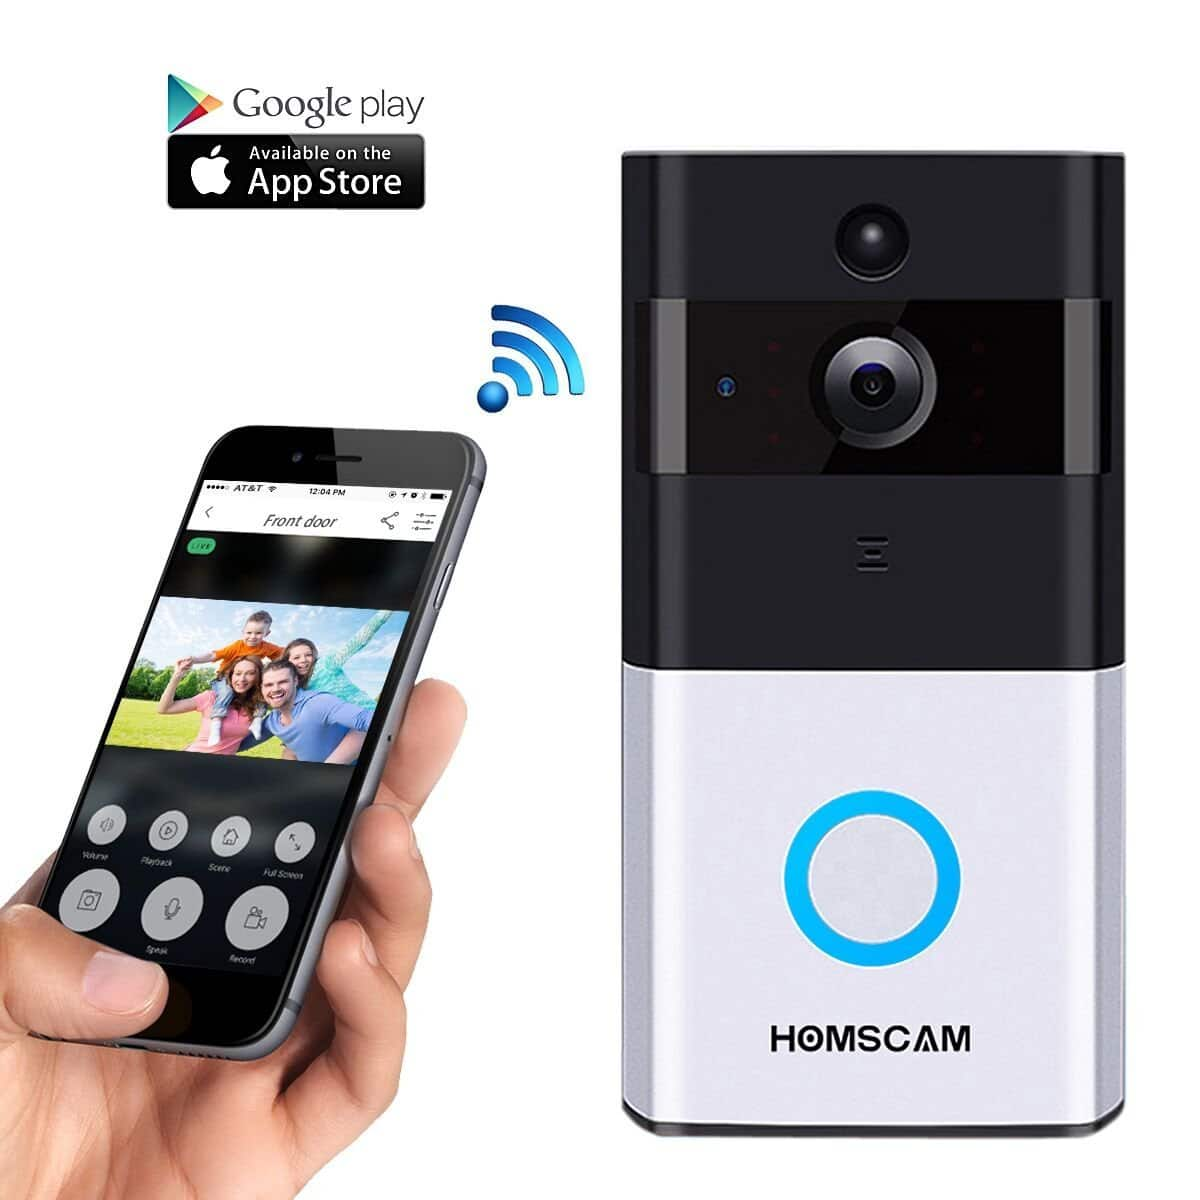 HOMSCAM Wireless Door Bell Smart WiFi Camera on Amazon $69.99 AC w/ Free Prime Shipping